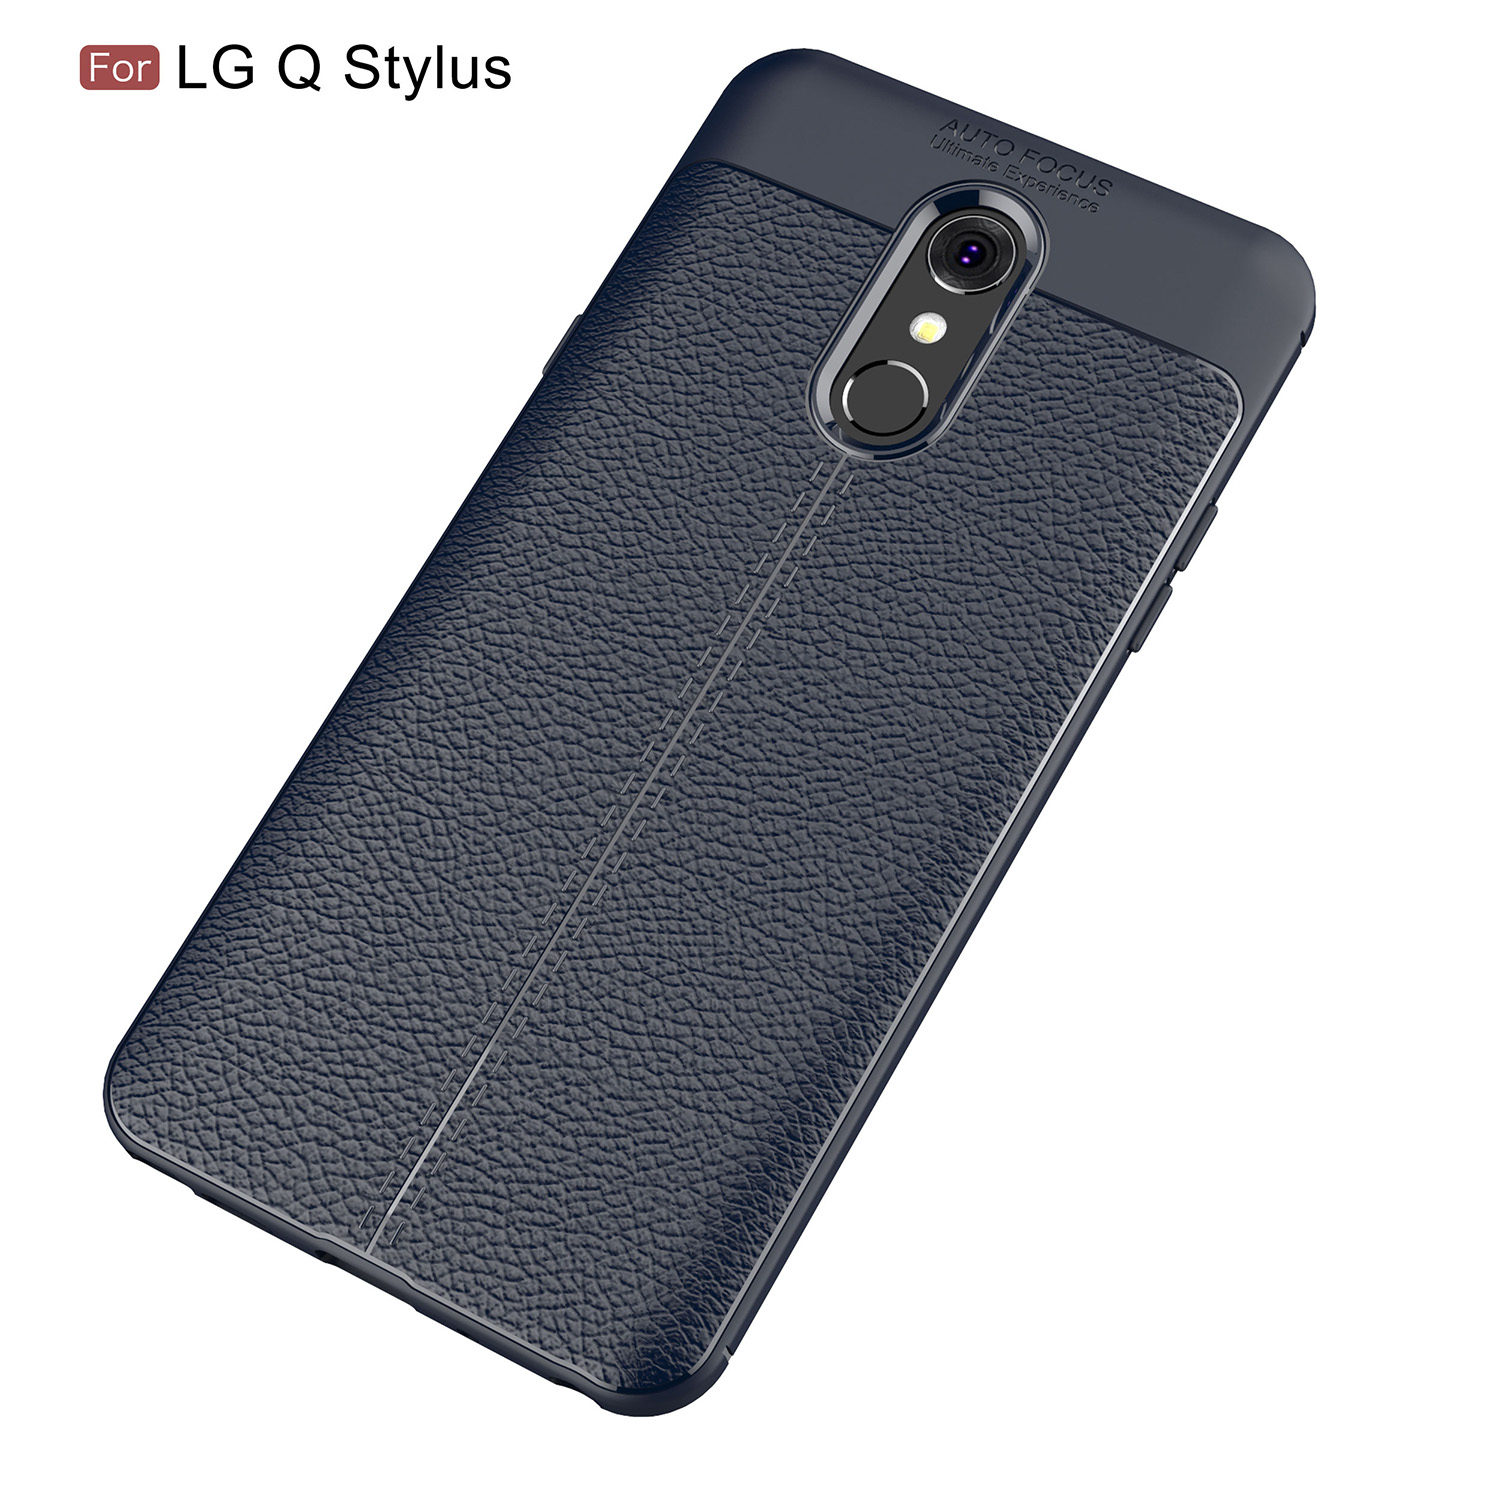 US $4 99 |Funda LG Stylo4 MetroPCS Cover Case LG Q Stylus+ Alpha Shell  Silicone Cover LG Q Stylus Plus Q710MS Q710CS Mobile Cases-in Fitted Cases  from